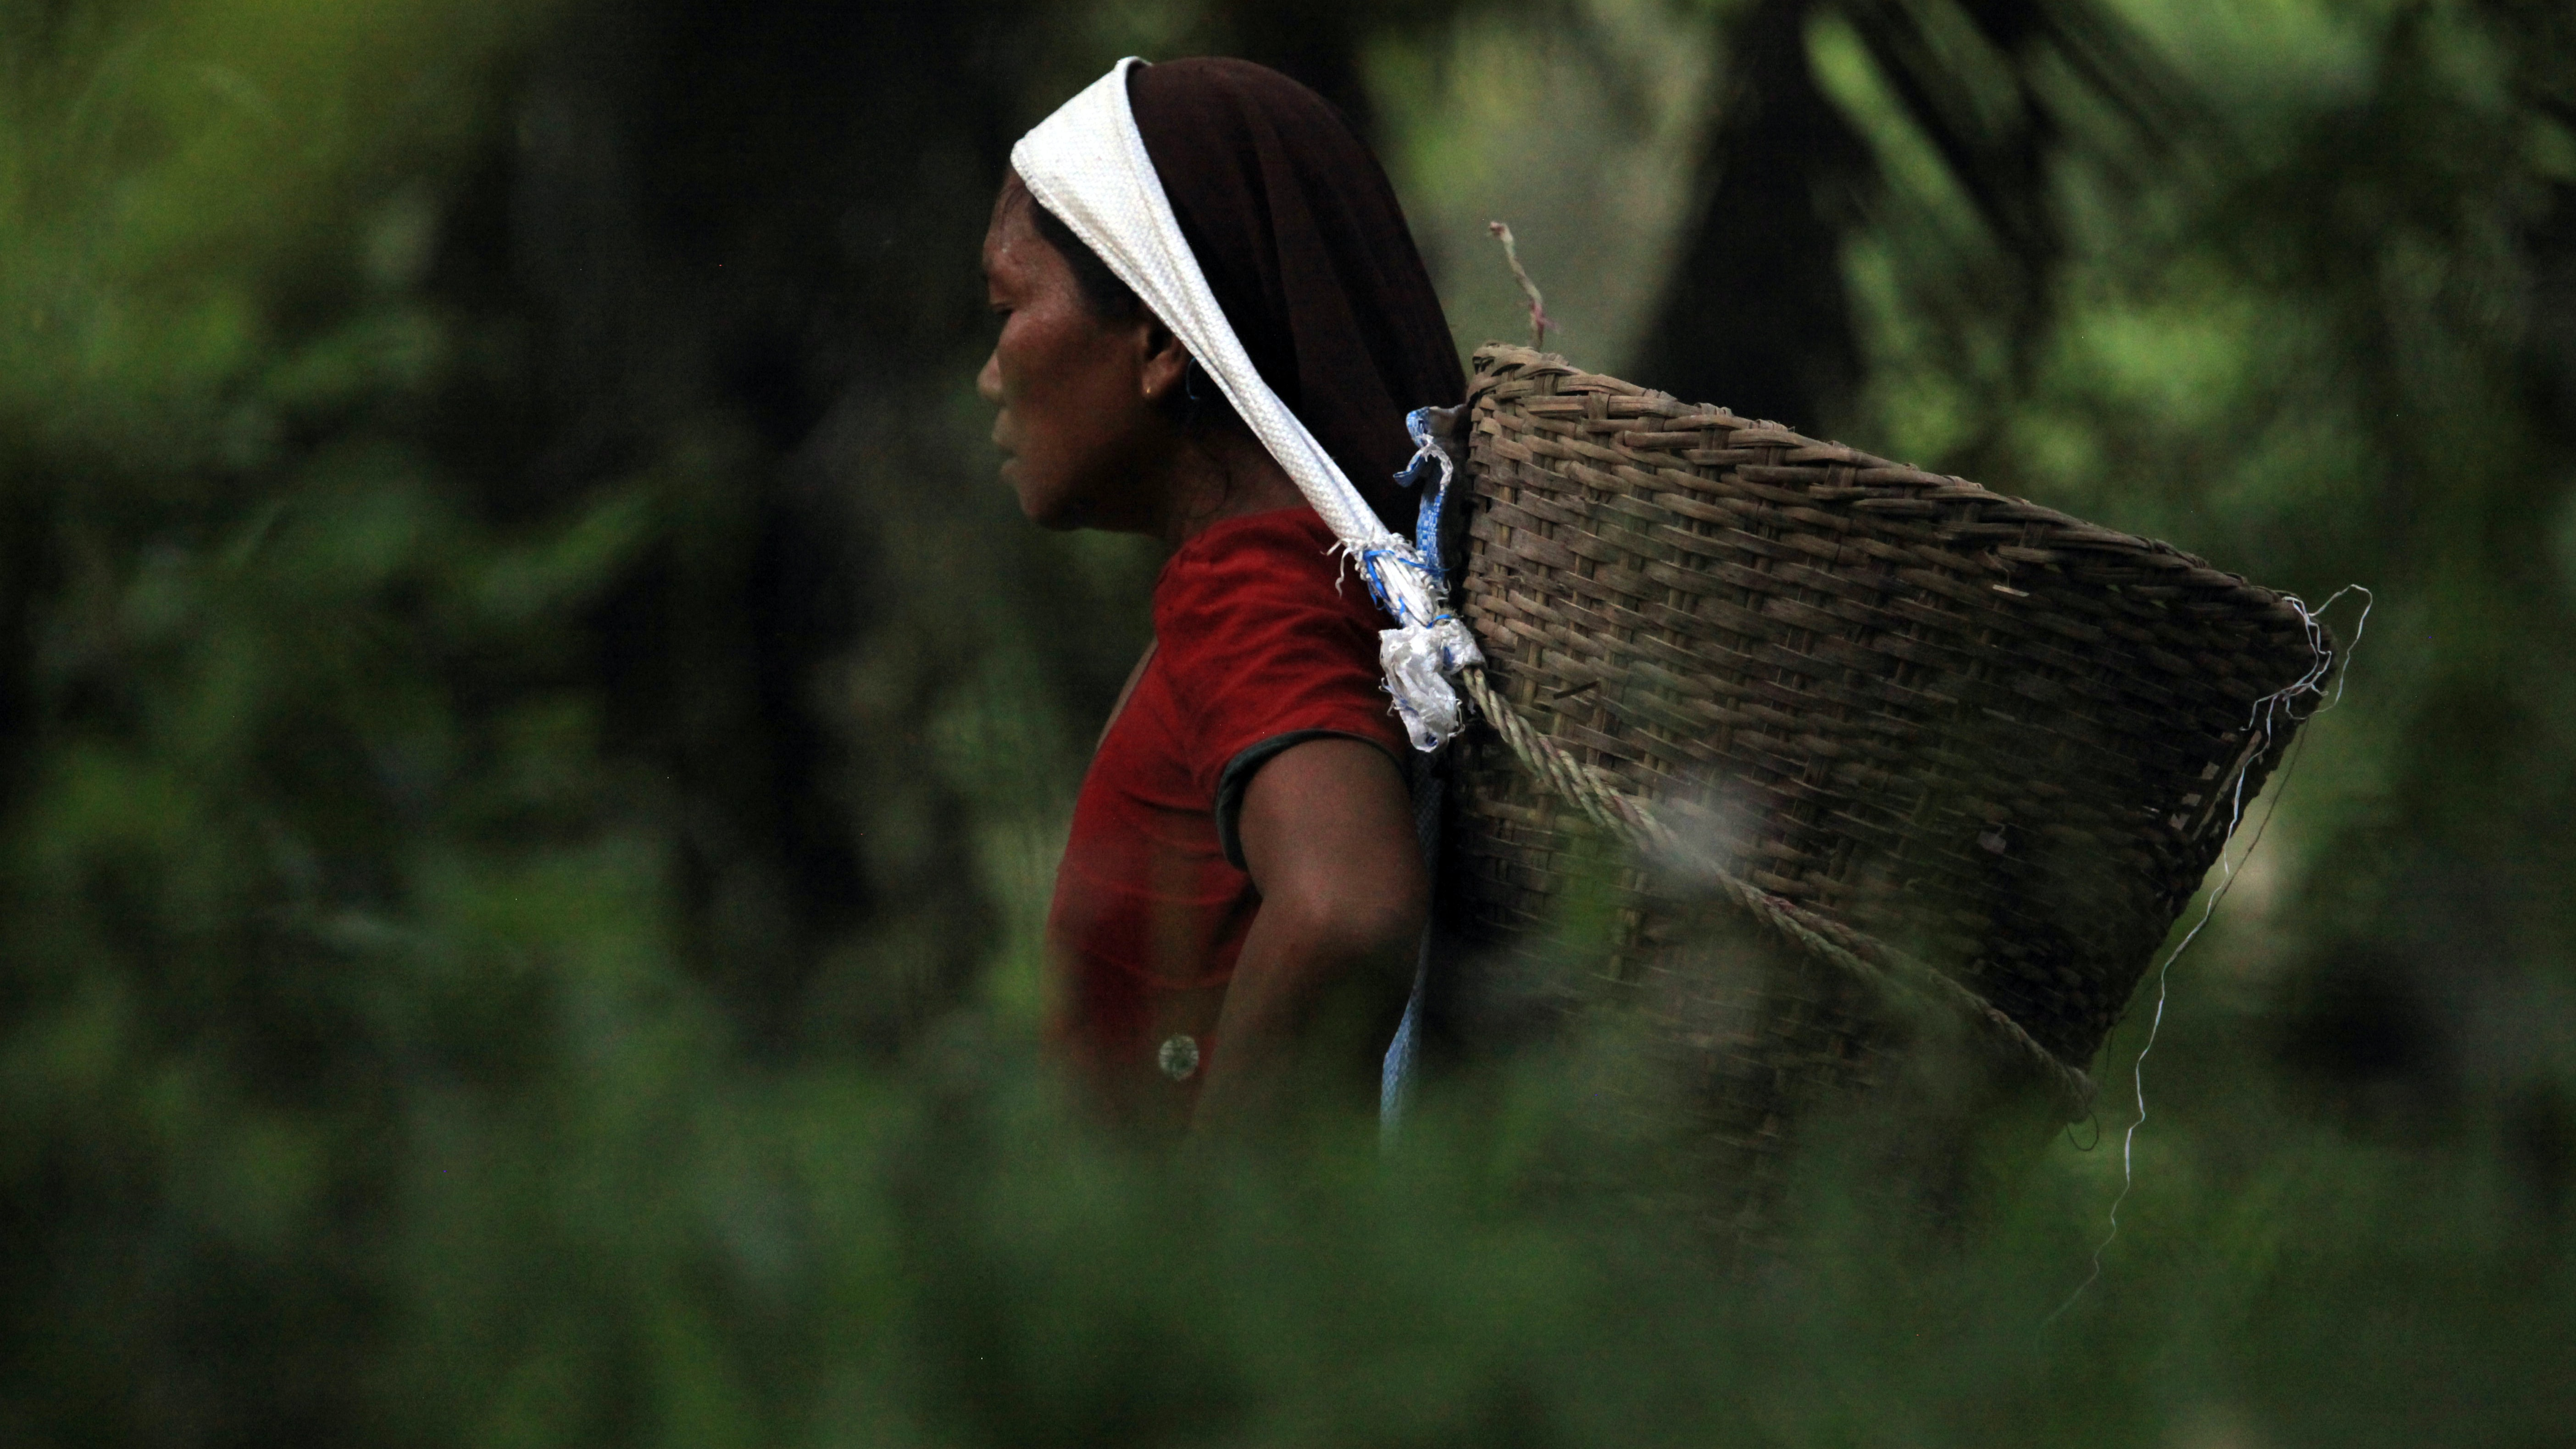 A woman standing among plants with a basket hanging from her forehead by a scarf